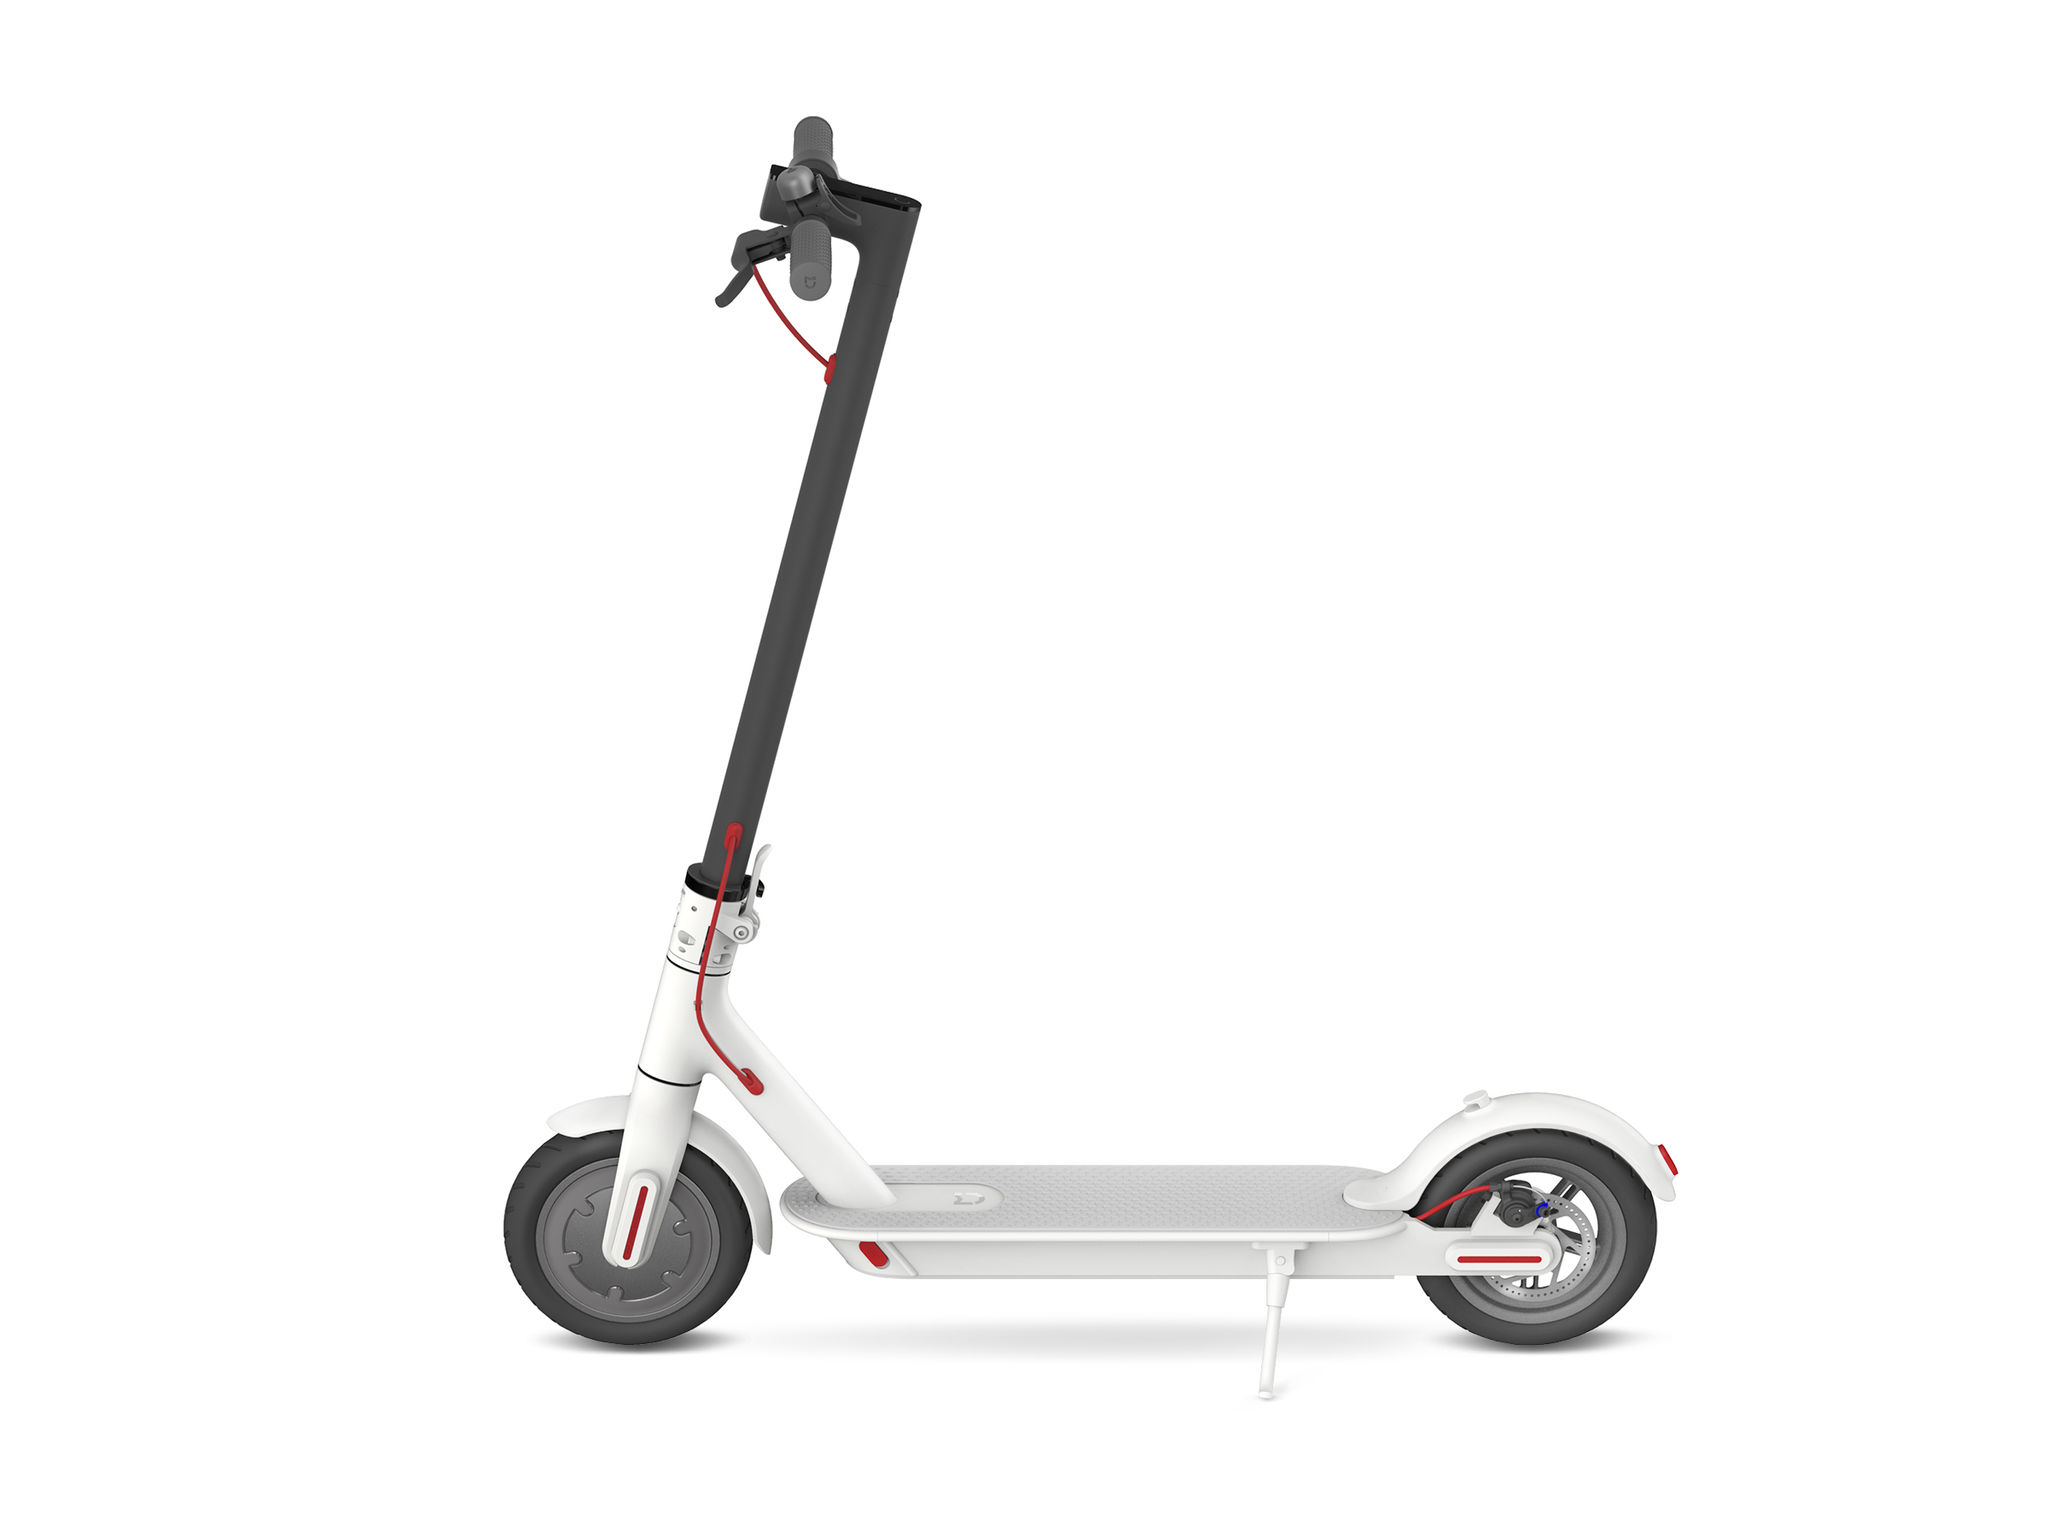 mi electric scooter entry if world design guide